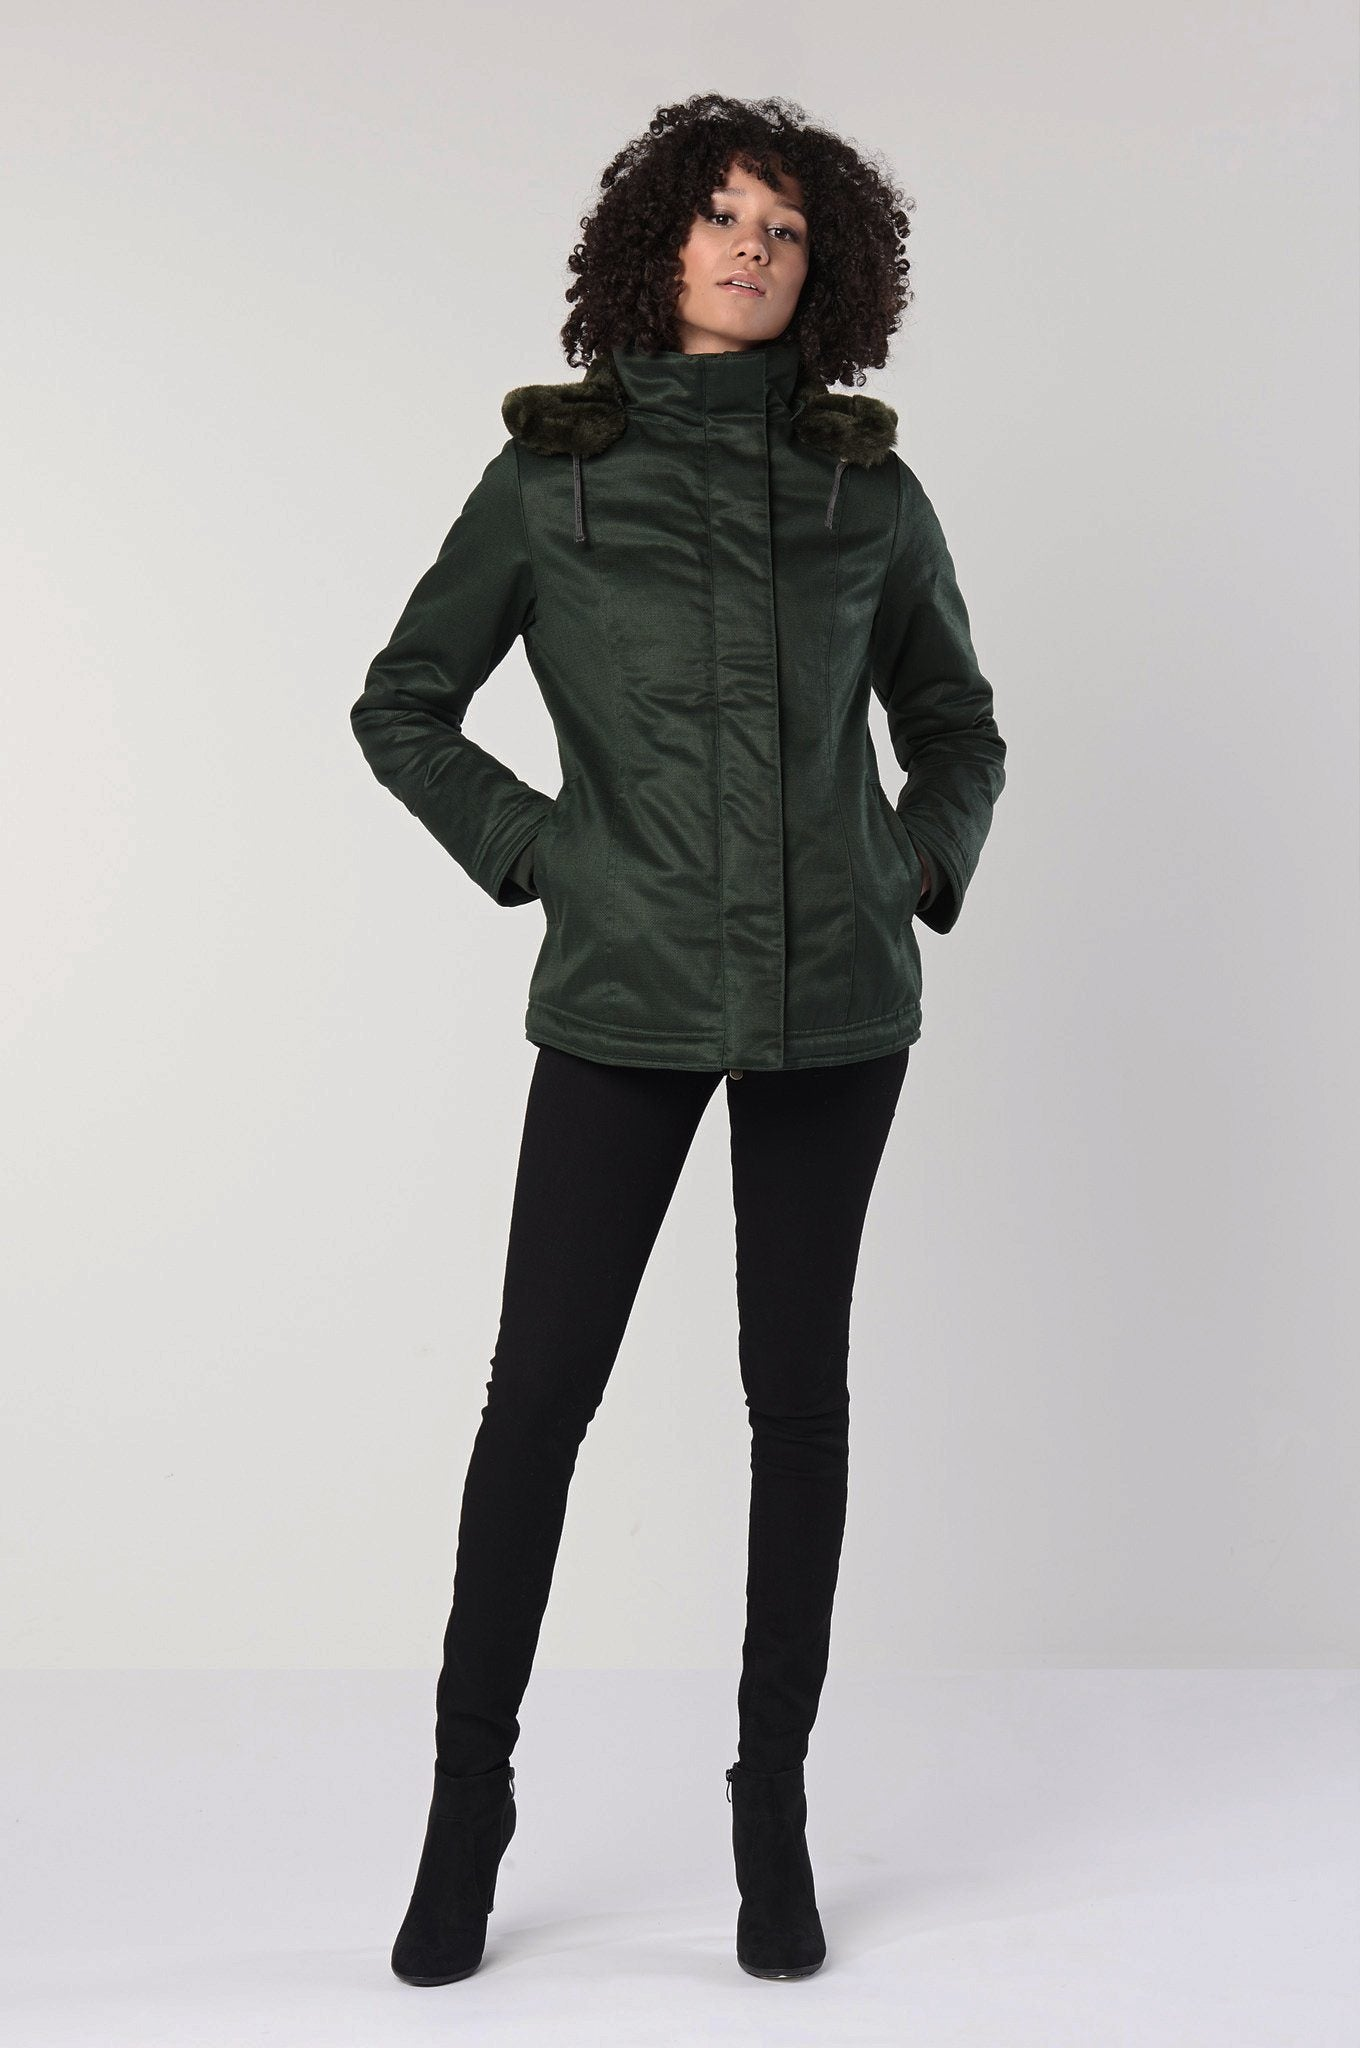 HEMP JACKET Green - Komodo Fashion